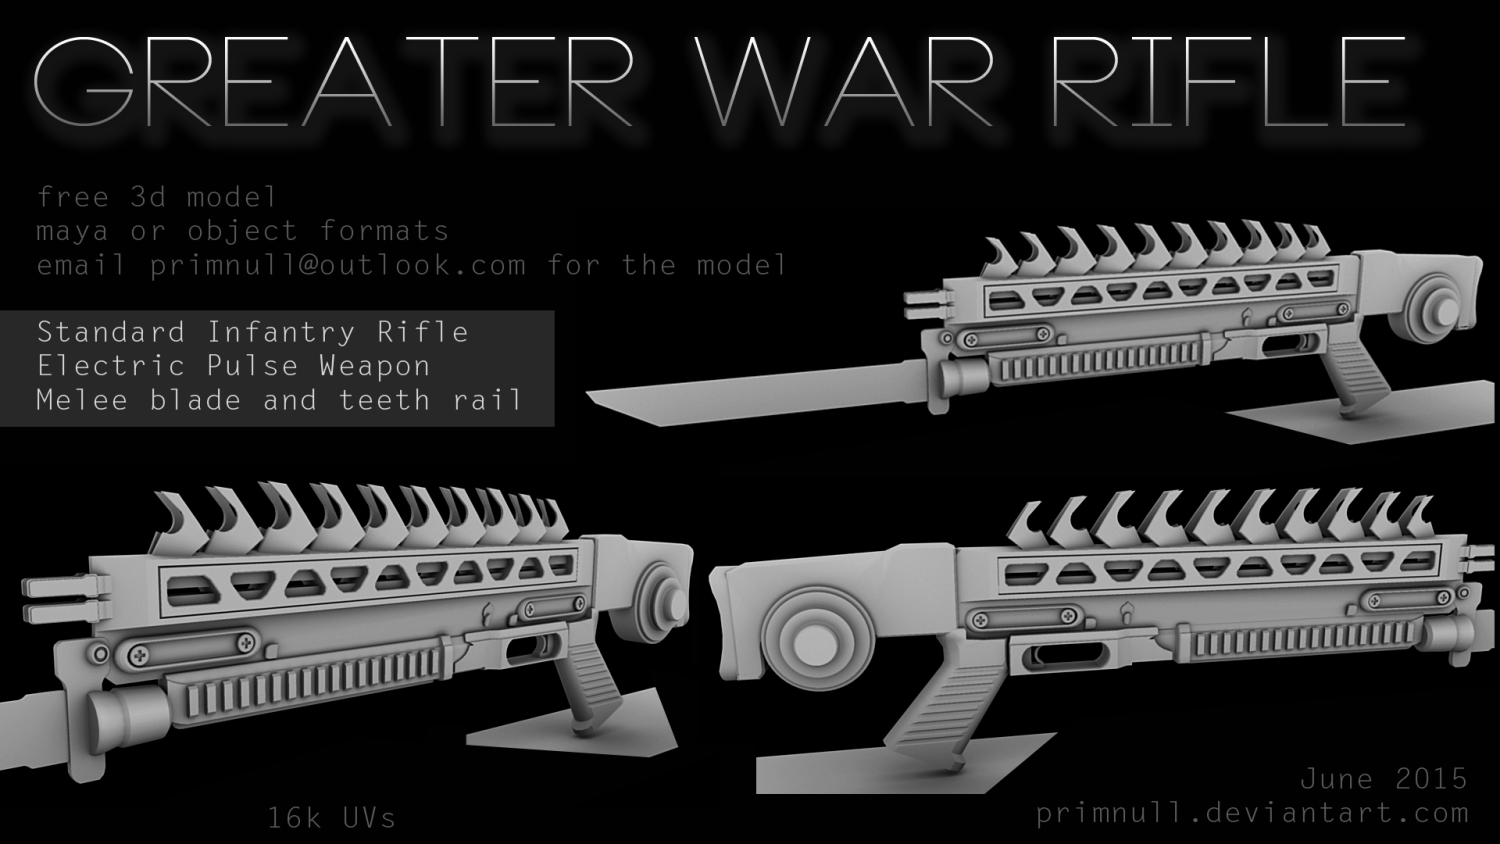 greater_war_rifle_by_primnull-d8xbcd1.png